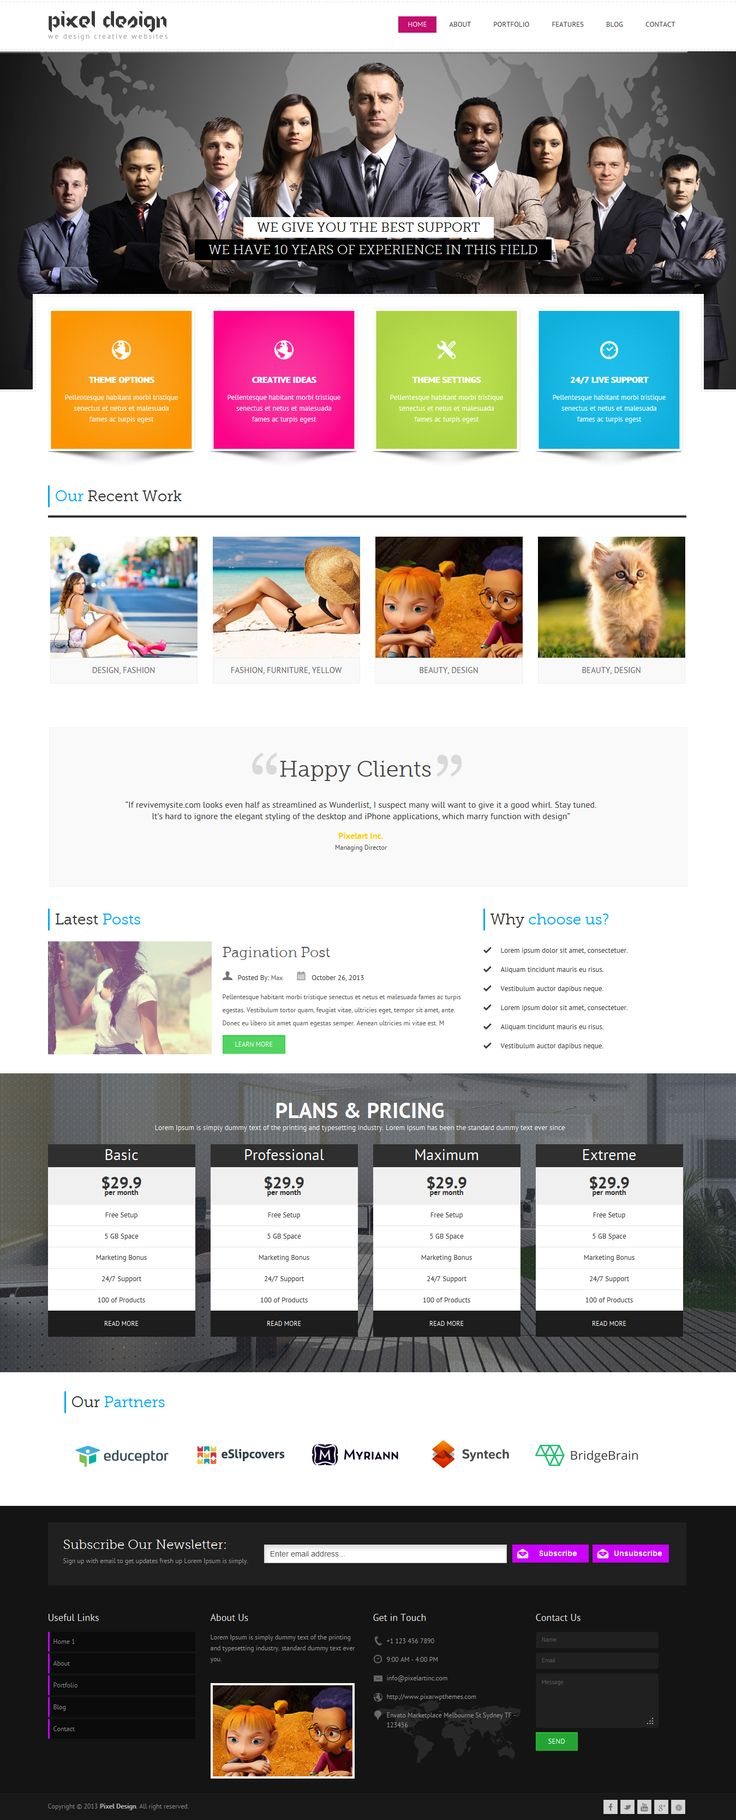 Pixel Design is a colorful multipurpose responsive wordpress theme. Pixel Design is so clean, super flexible and has a fully responsive design! Built with HTML5 & CSS3, a lot of thought and care went into this theme making it a pleasure to use. The clean design can be used for any type of website; business, corporate, portfolio, blog, products, etc.